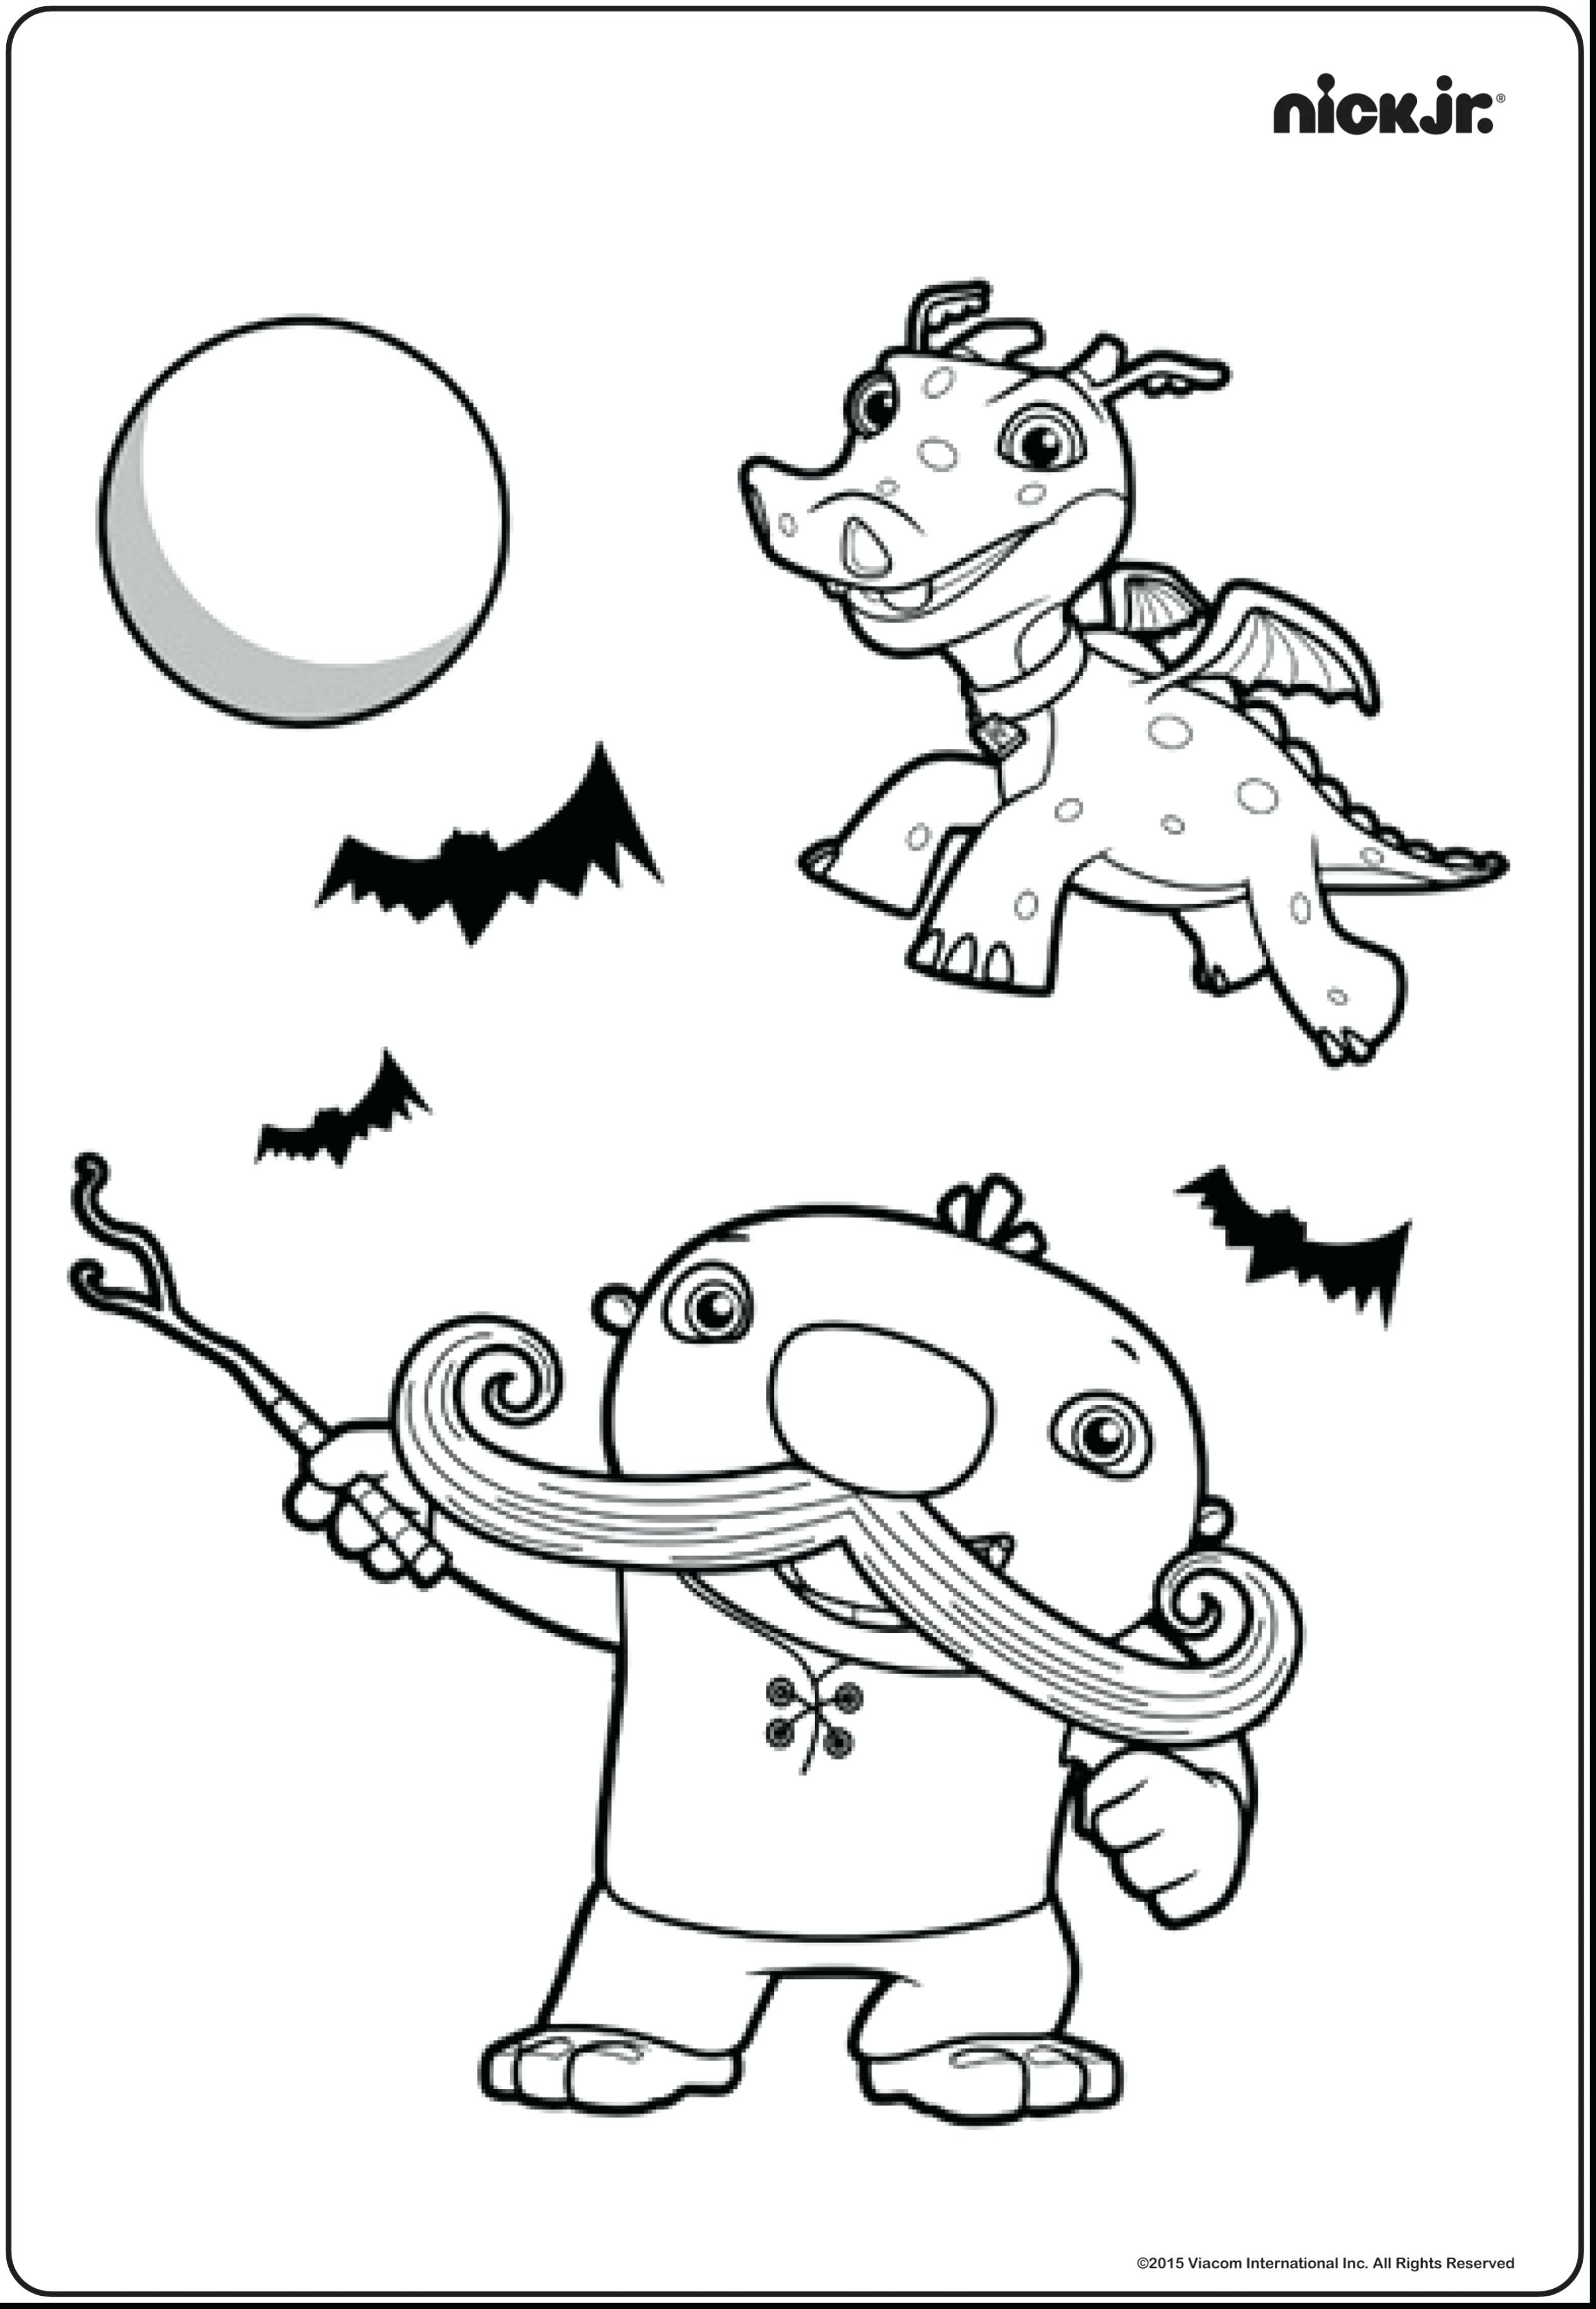 Nick Jr Coloring Pages 4 to Games 17 1 Printable – Free Coloring Sheets